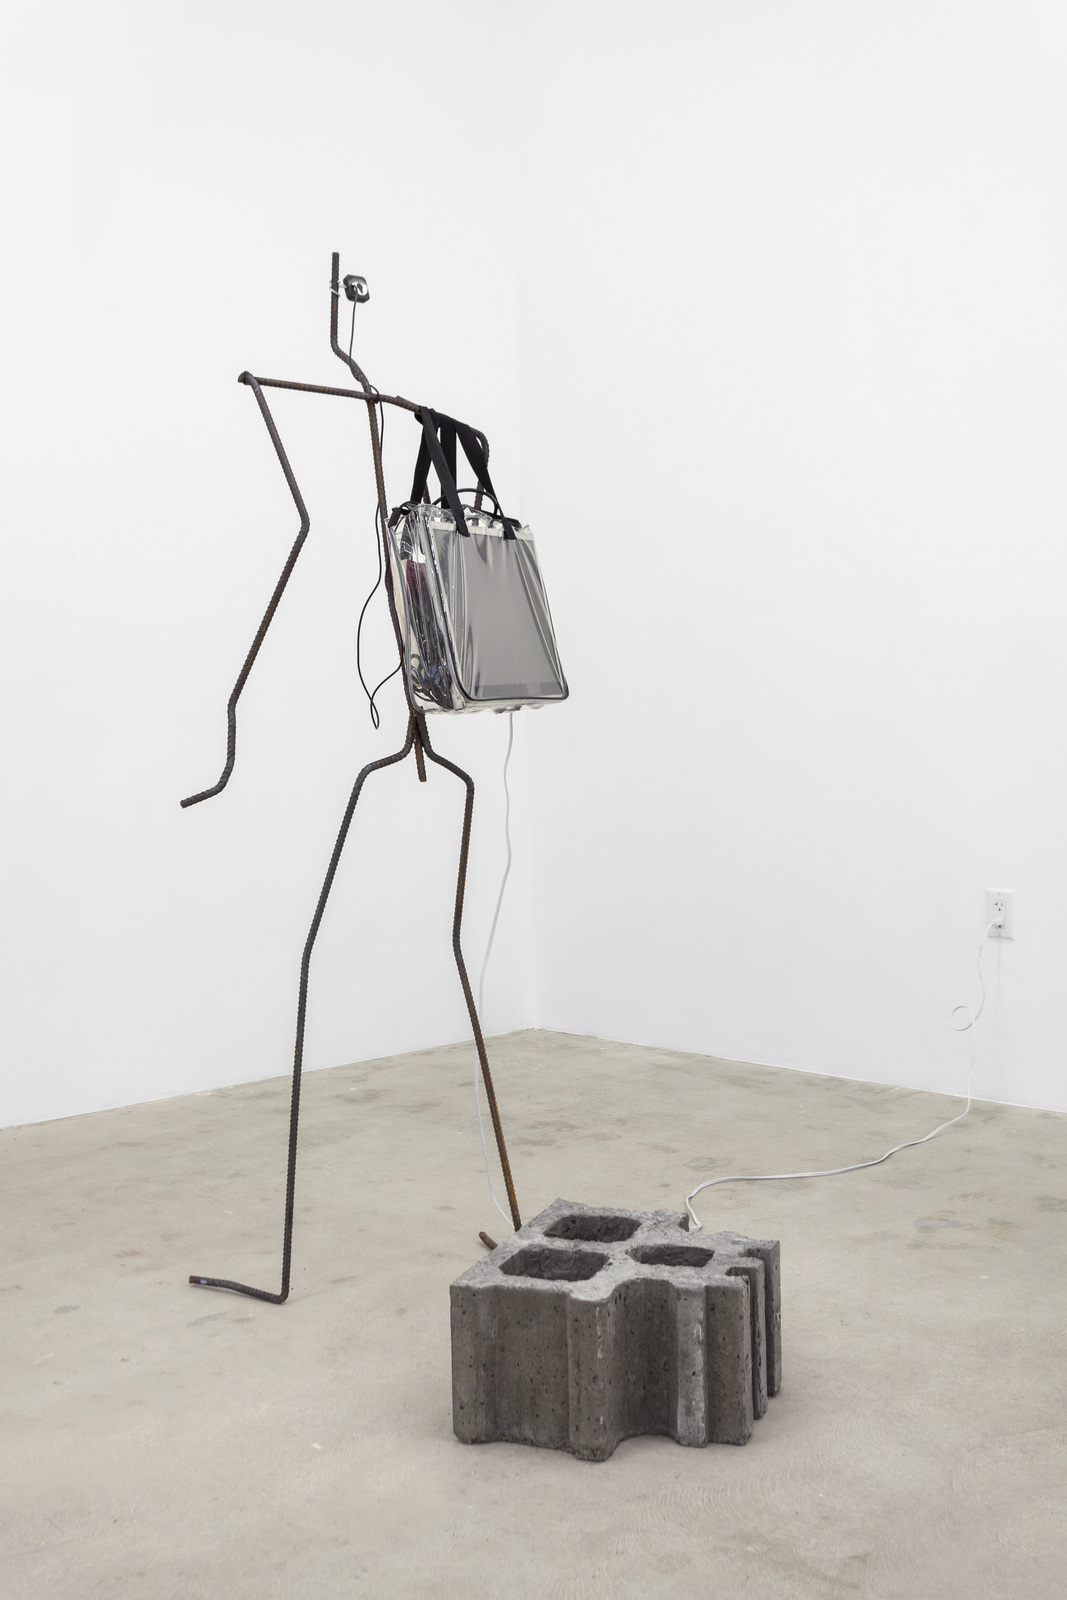 Versteeg_The Secret_Cement, welded steel, internet-connected computer program, electronics, tote bag, The Secret_2016